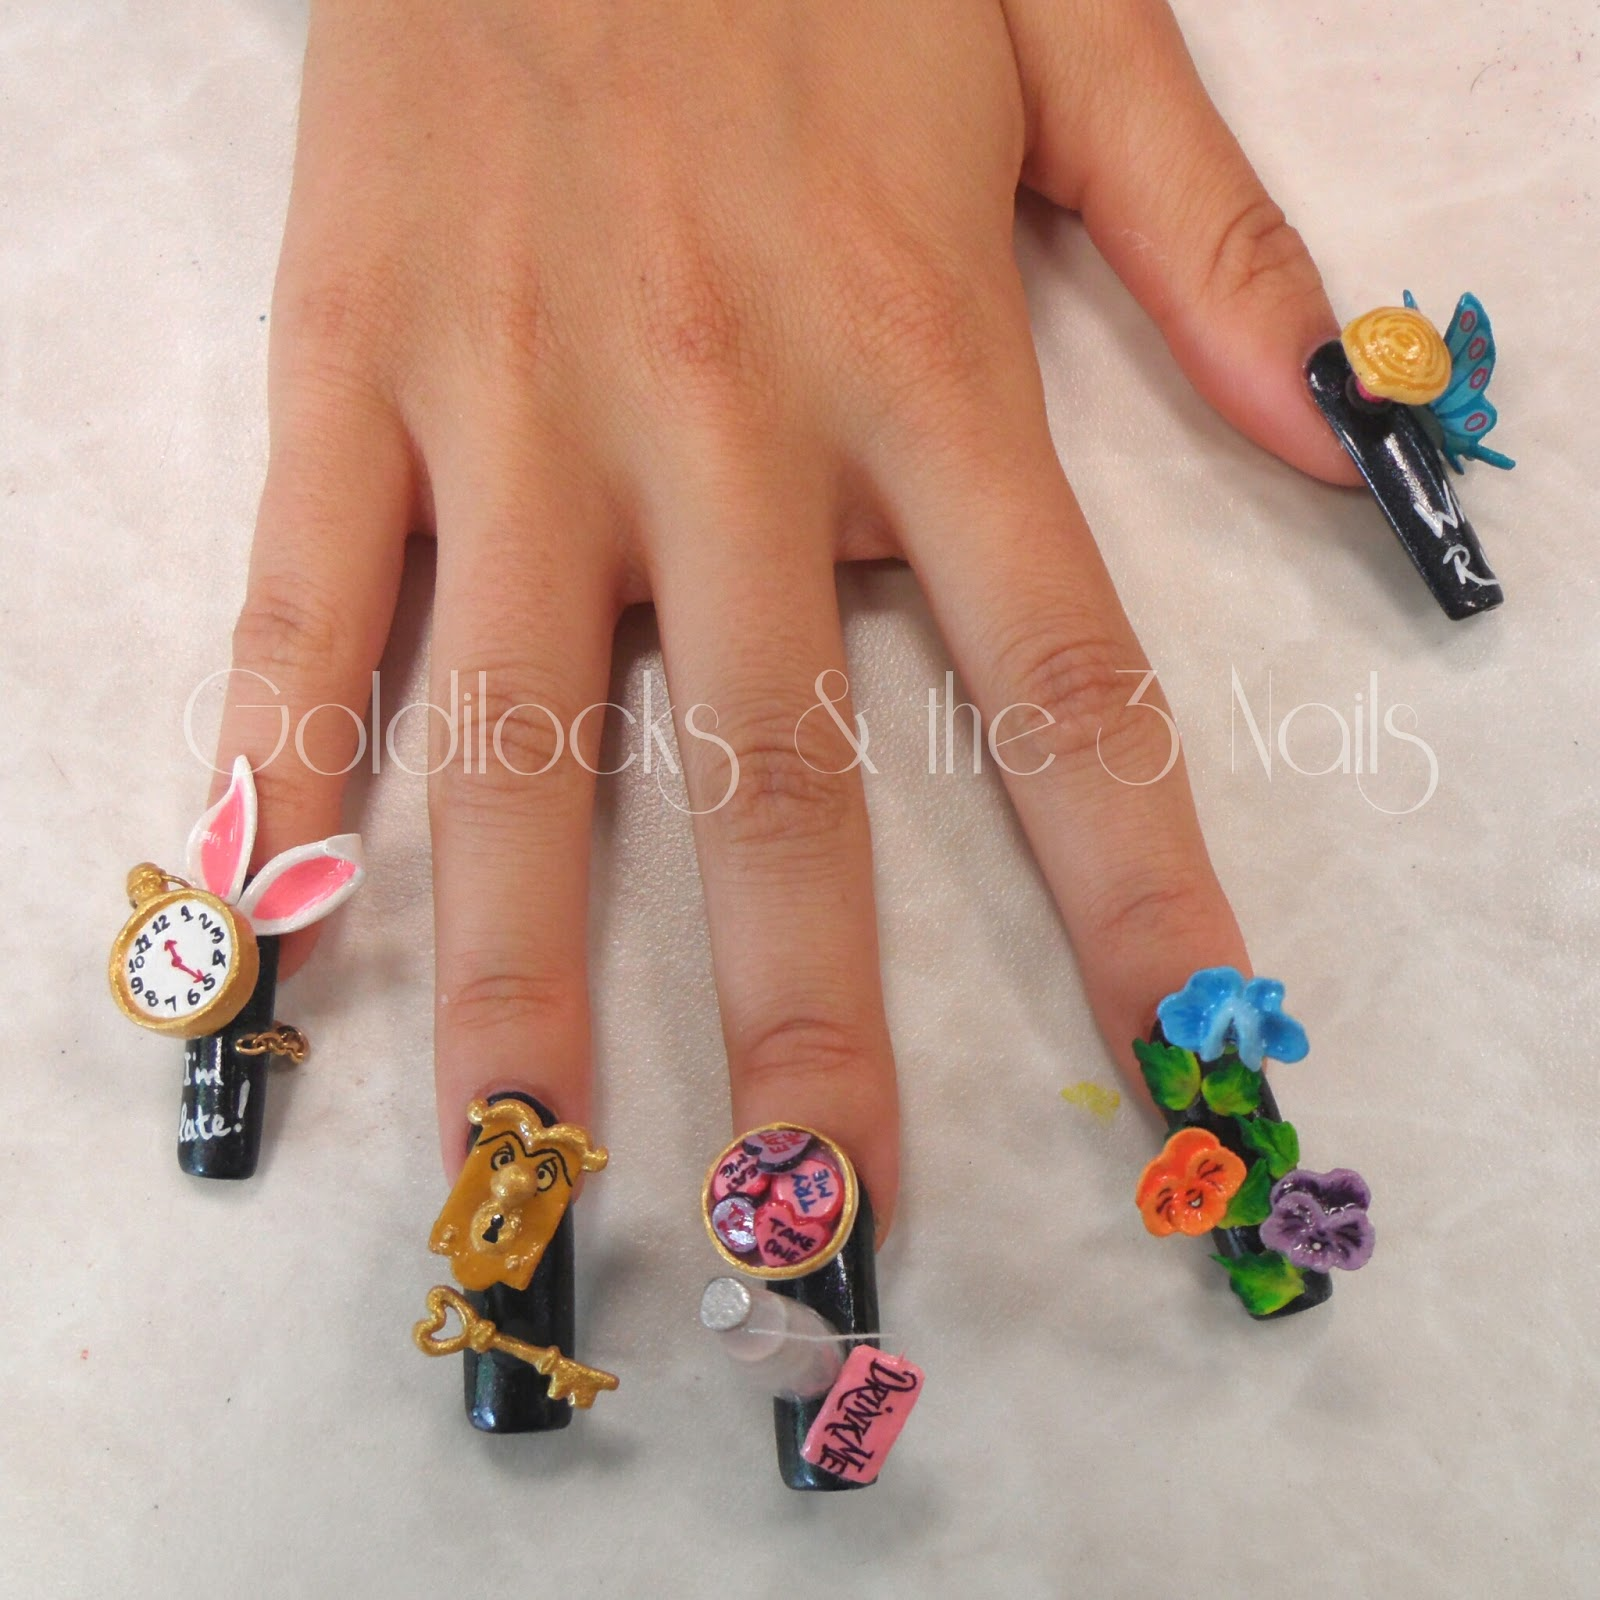 Goldilocks & the Three Nails: Alice in Wonderland 3D Nail Art